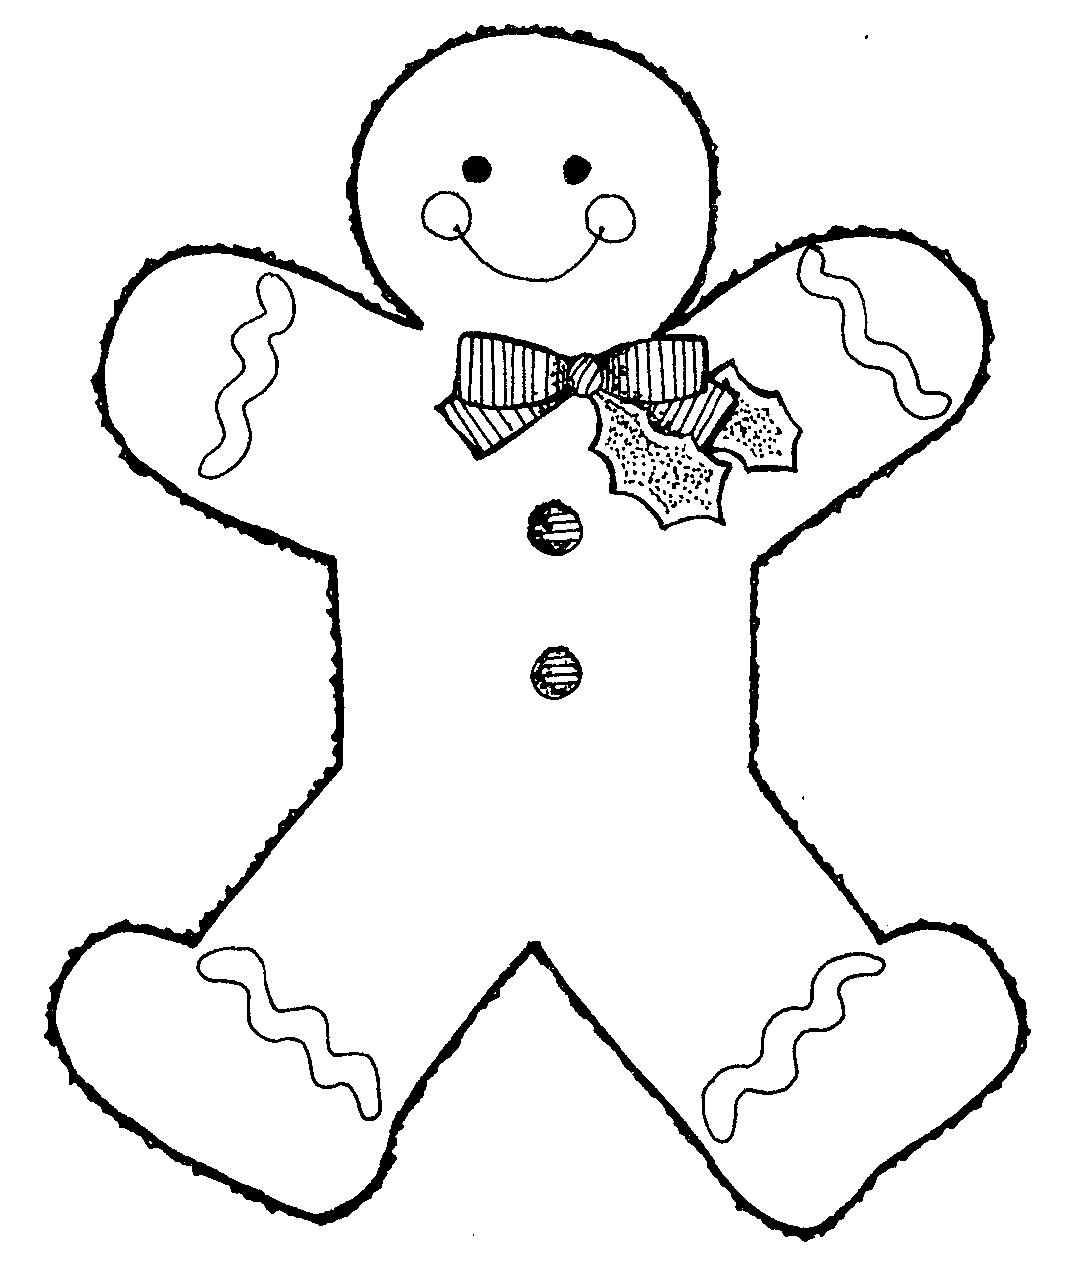 Christmas Coloring Pages Gingerbread Man With Free Printable For Kids